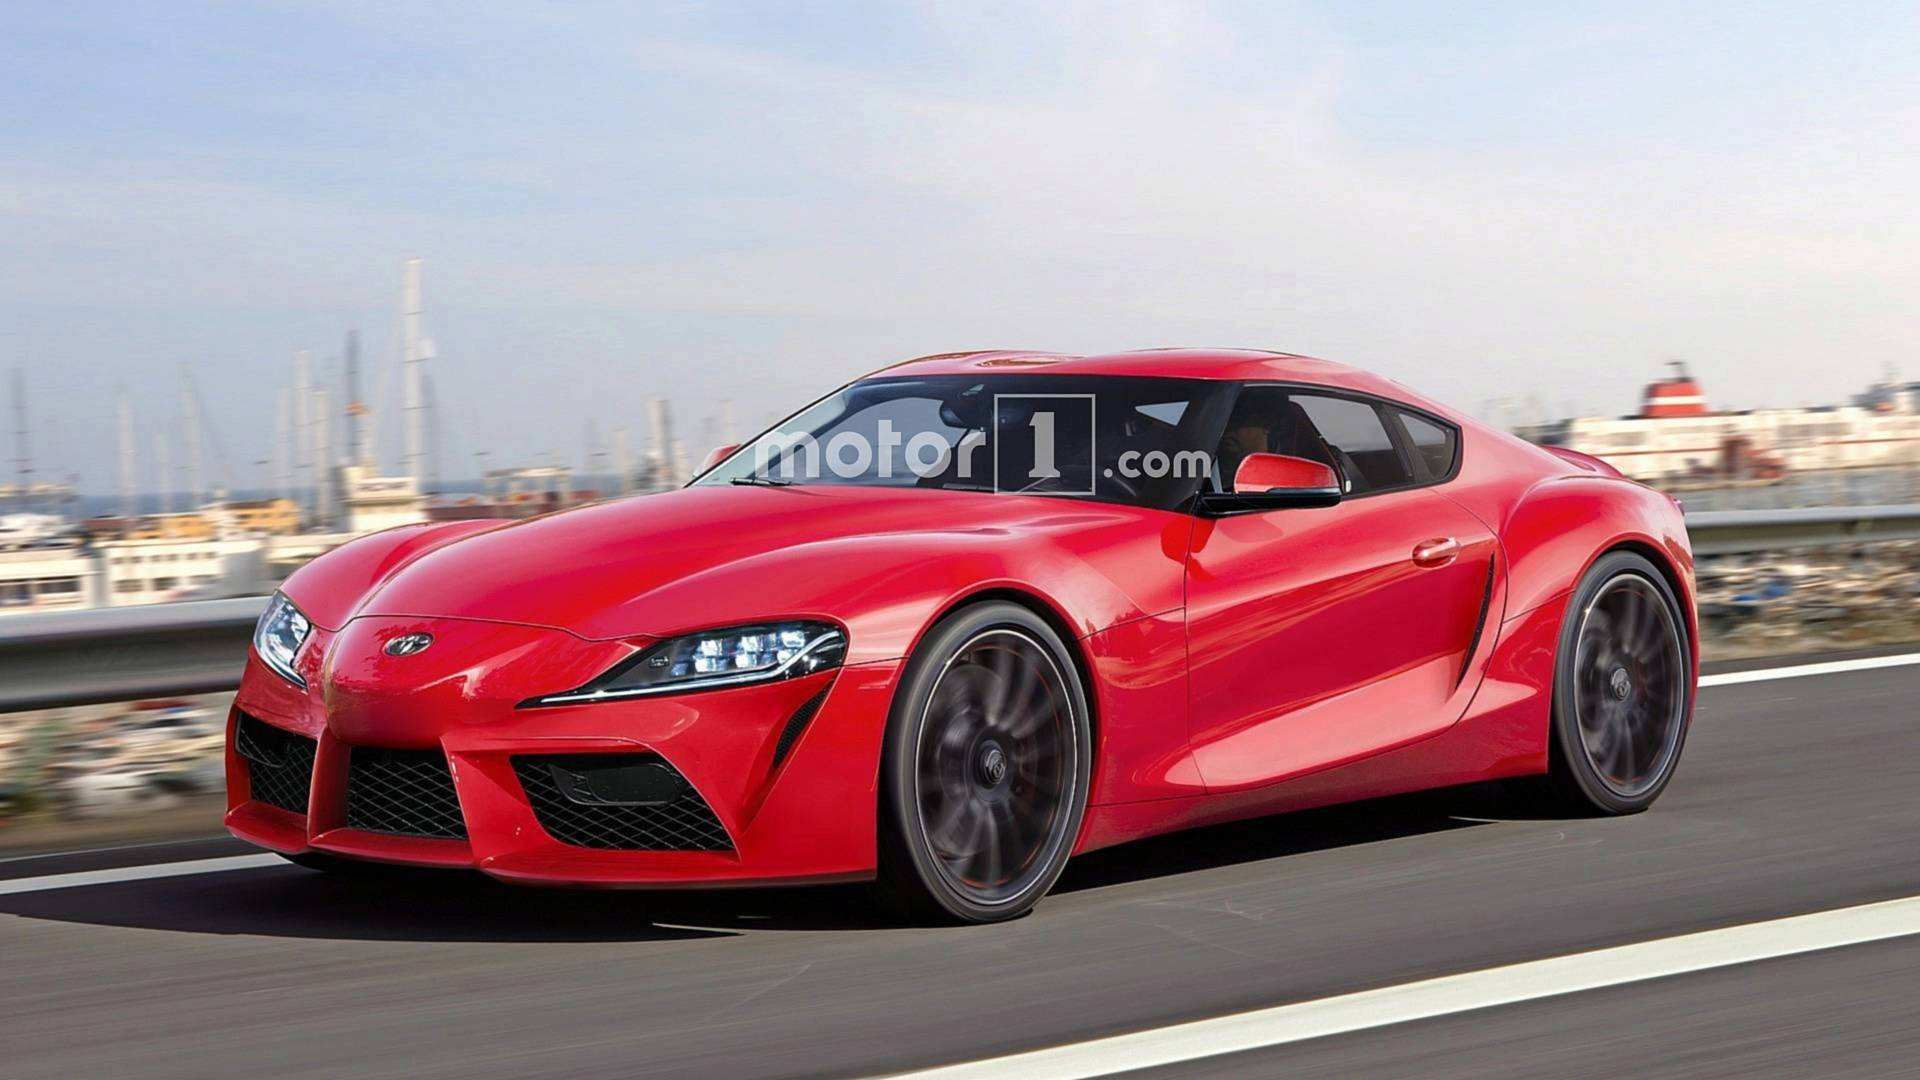 81 Best Review 2019 Toyota Supra News Exterior for 2019 Toyota Supra News